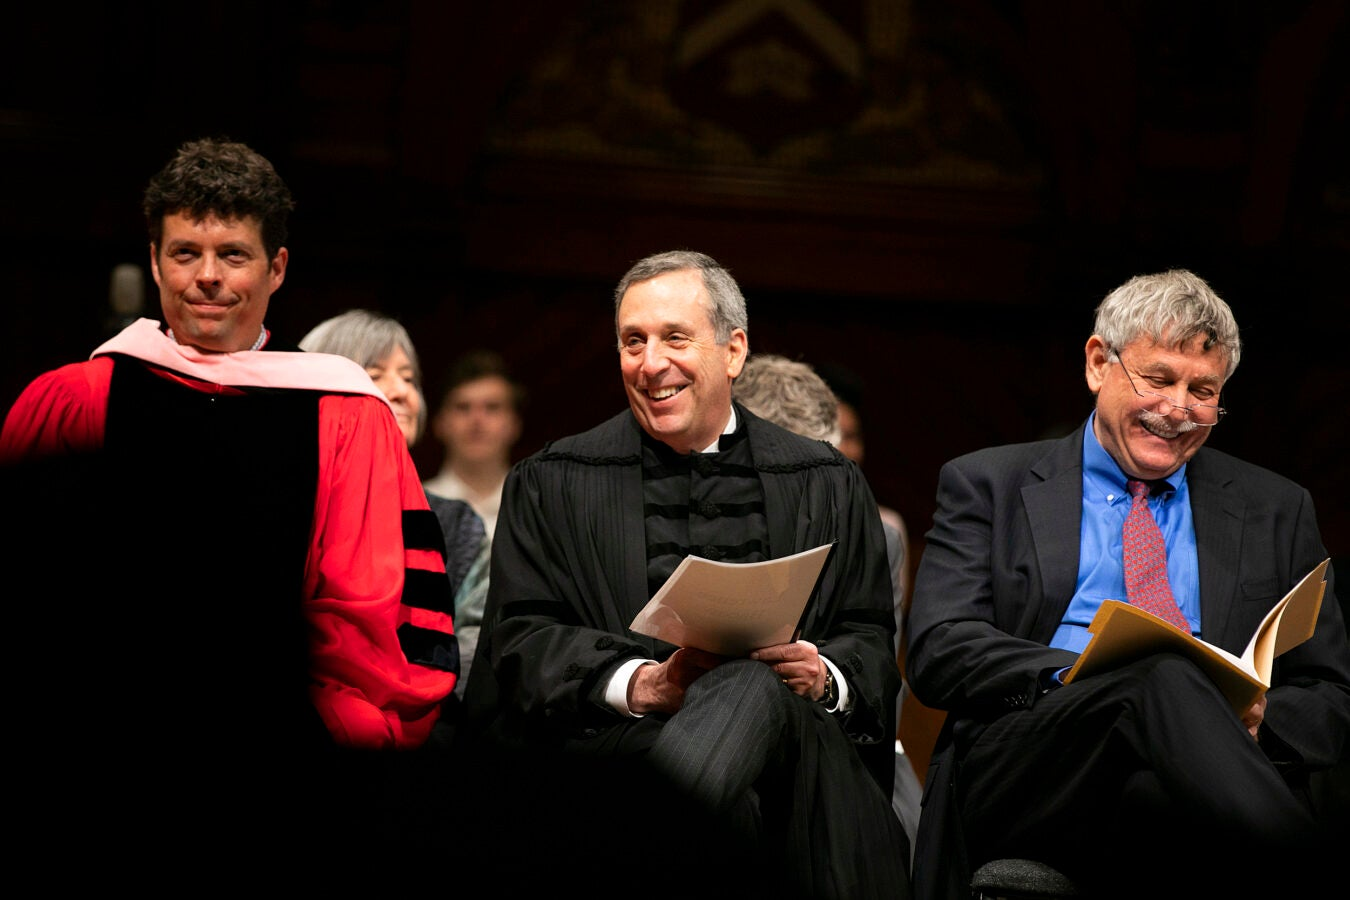 Director of Choral Activities and Senior Lecturer on Music Andrew Clark (from left), University President Larry Bacow, and Eric Lander sitting together.